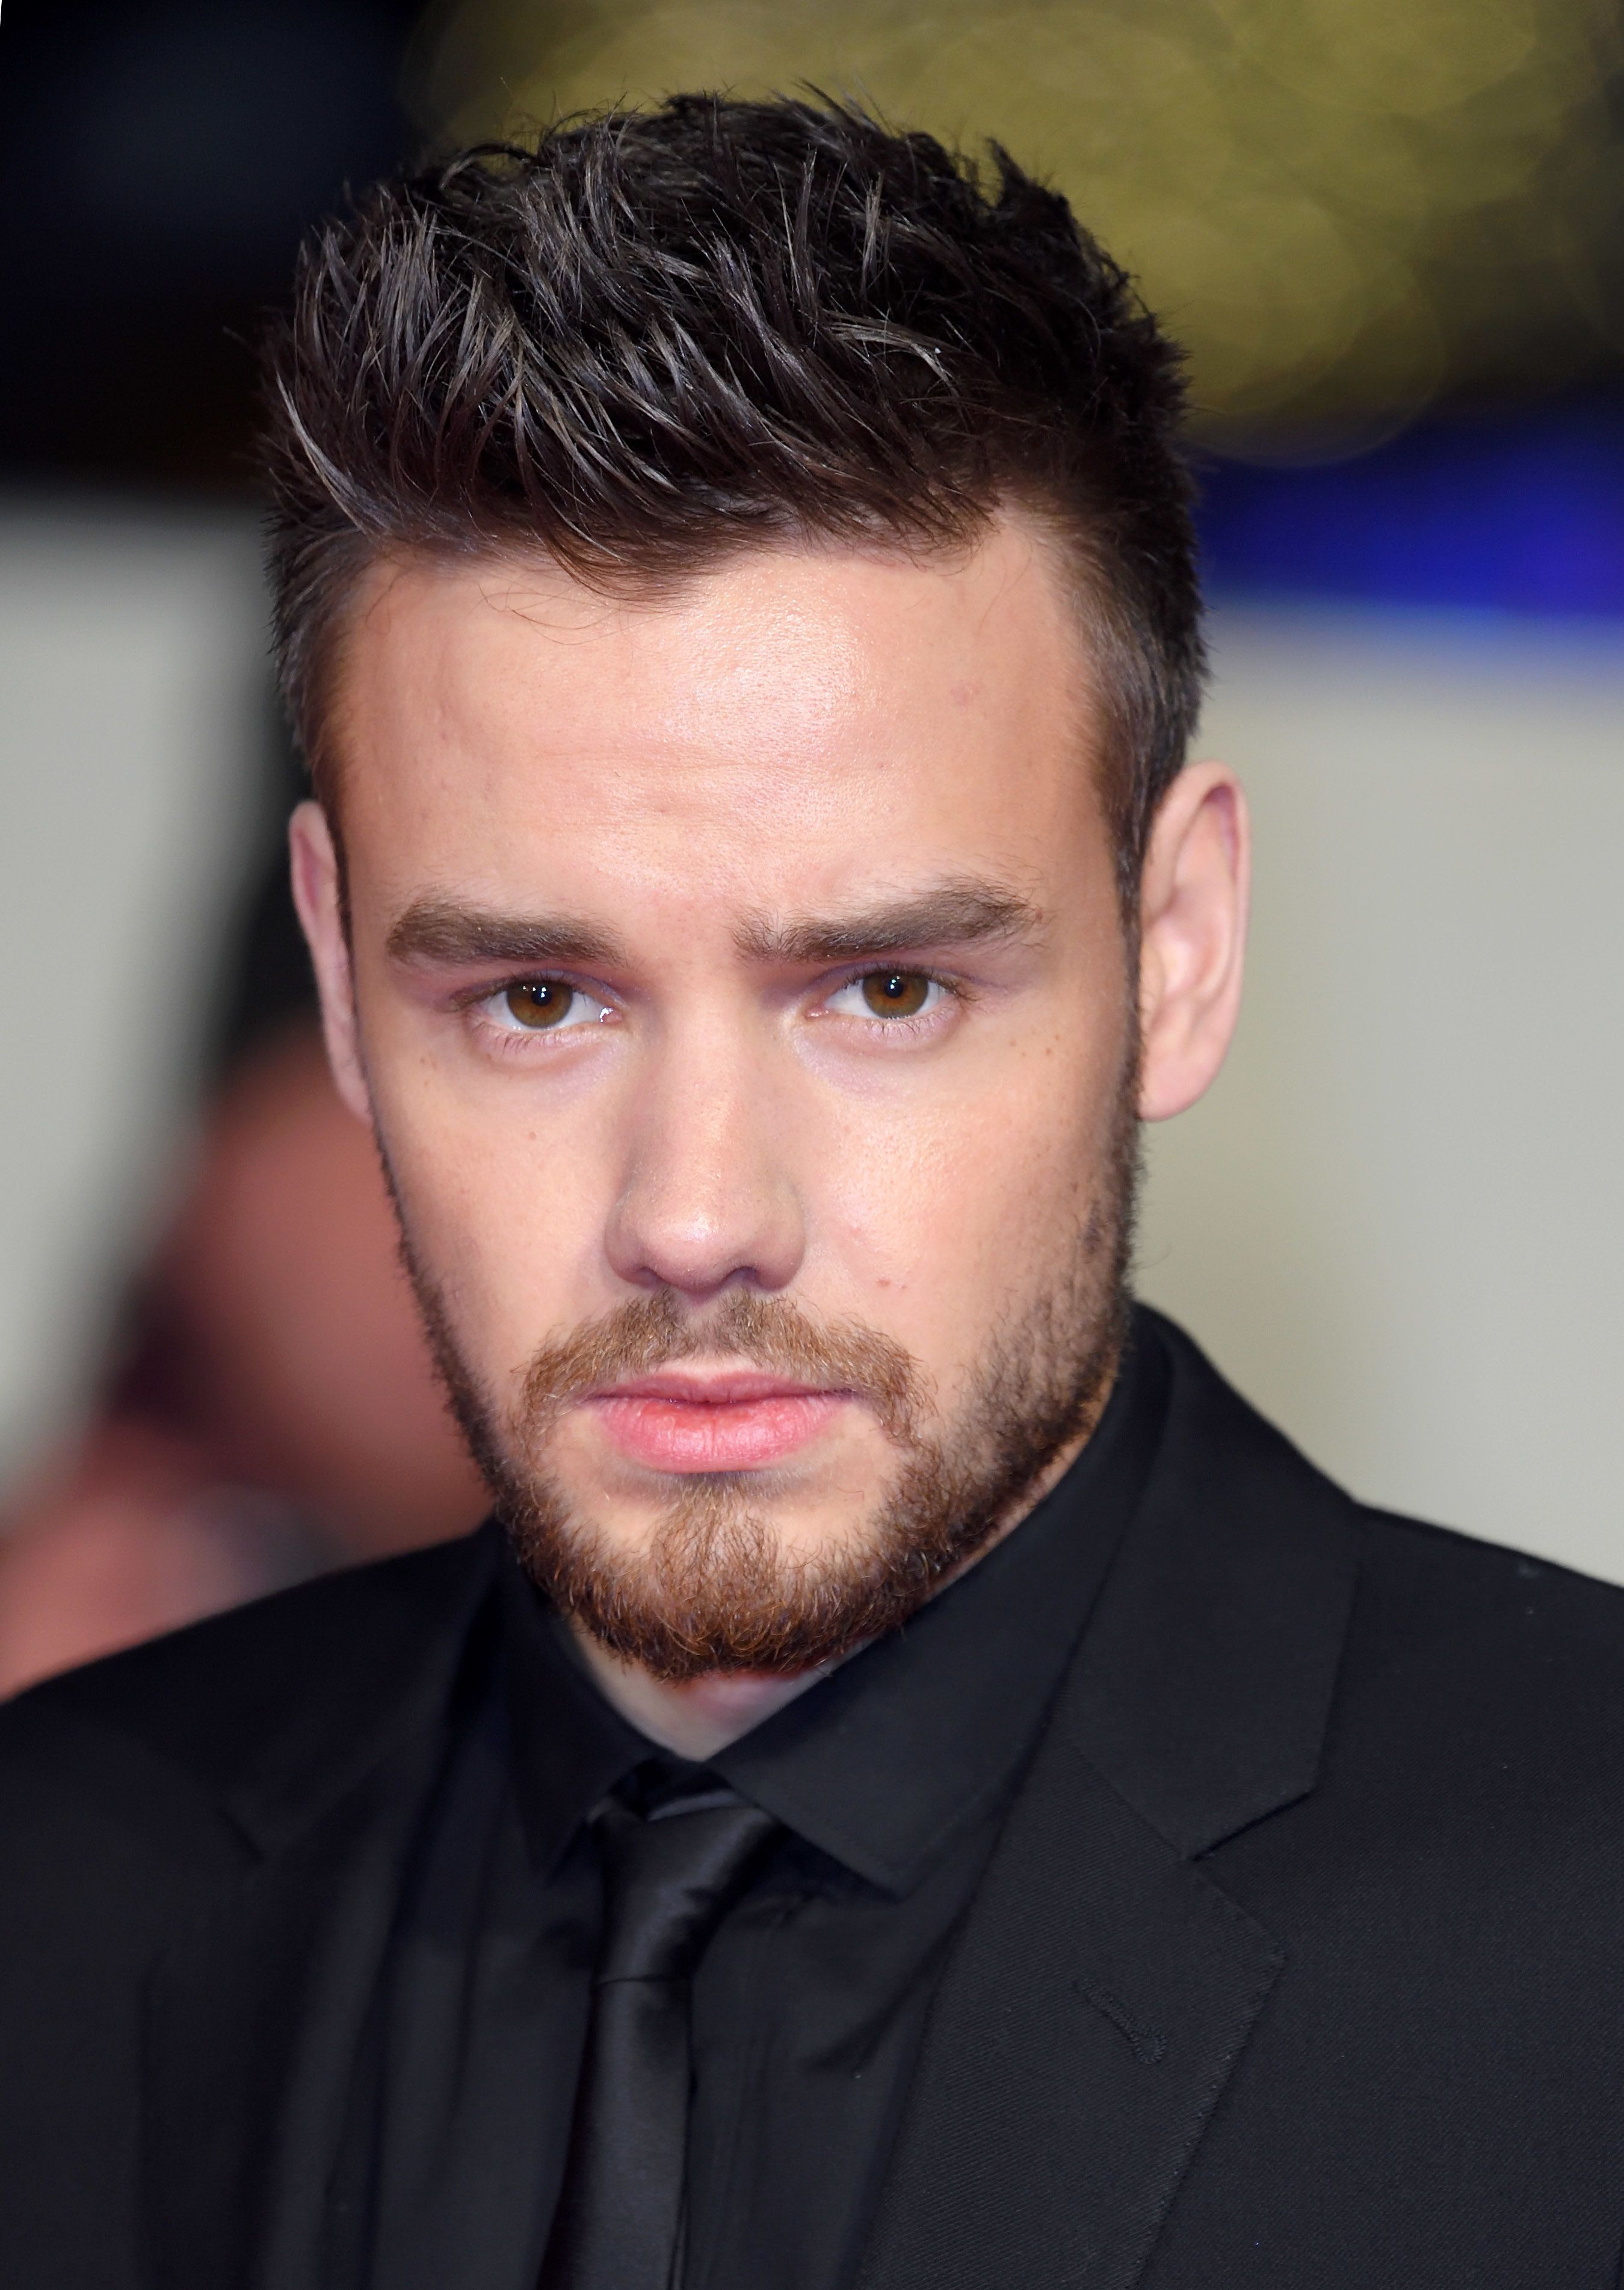 Liam Payne Tells Louis Walsh To 'Shut The F*** Up' After 'X Factor' Judge Slams Girlfriend